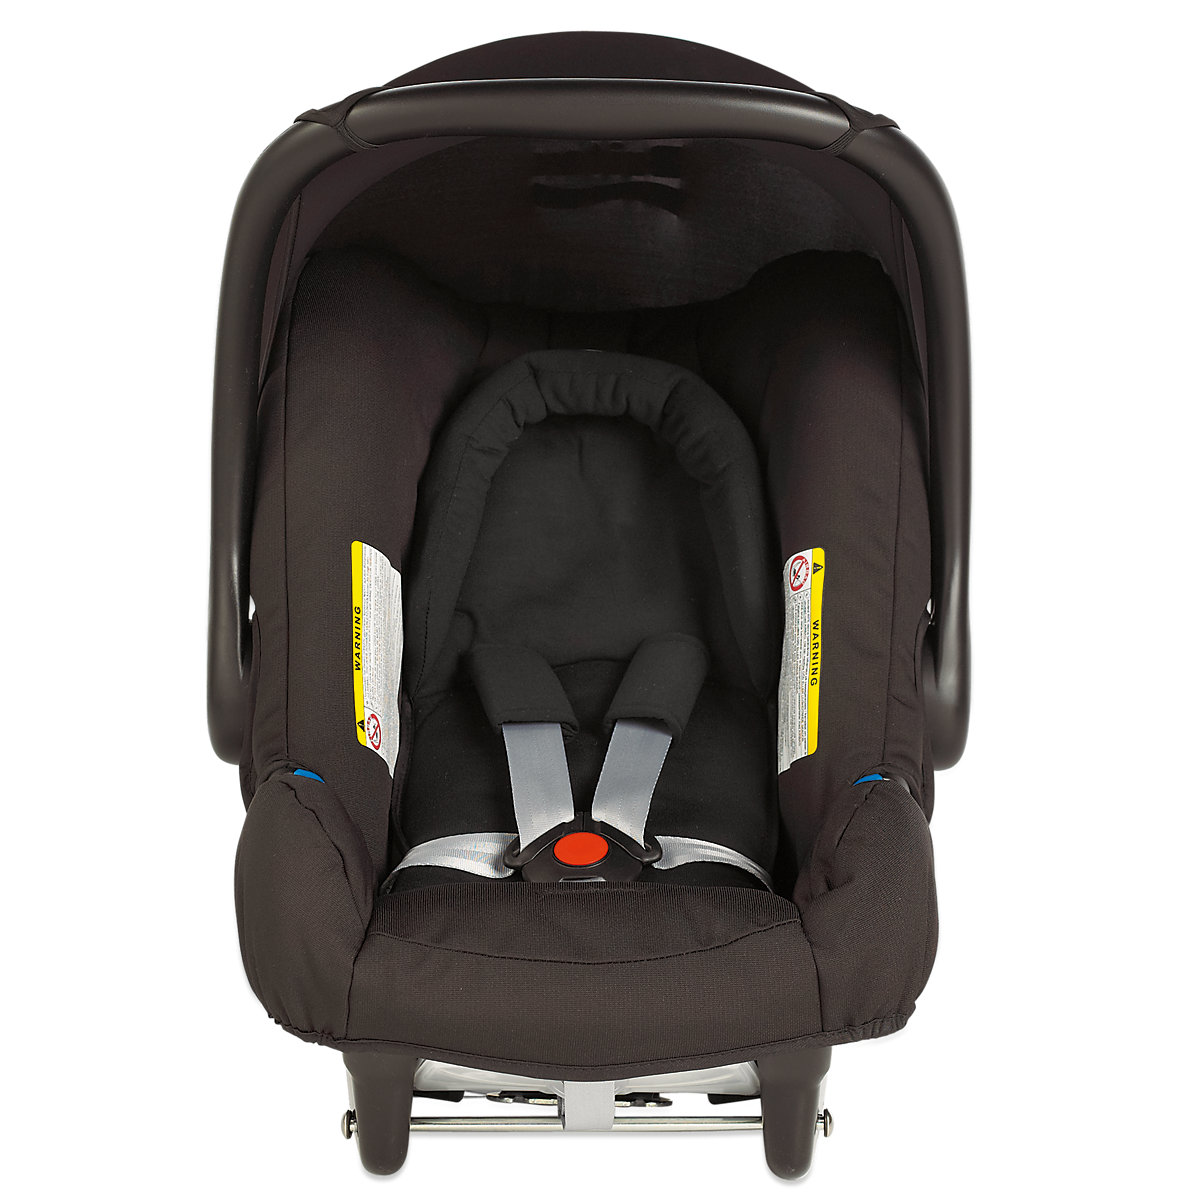 britax baby safe child car seat compare prices at foundem. Black Bedroom Furniture Sets. Home Design Ideas